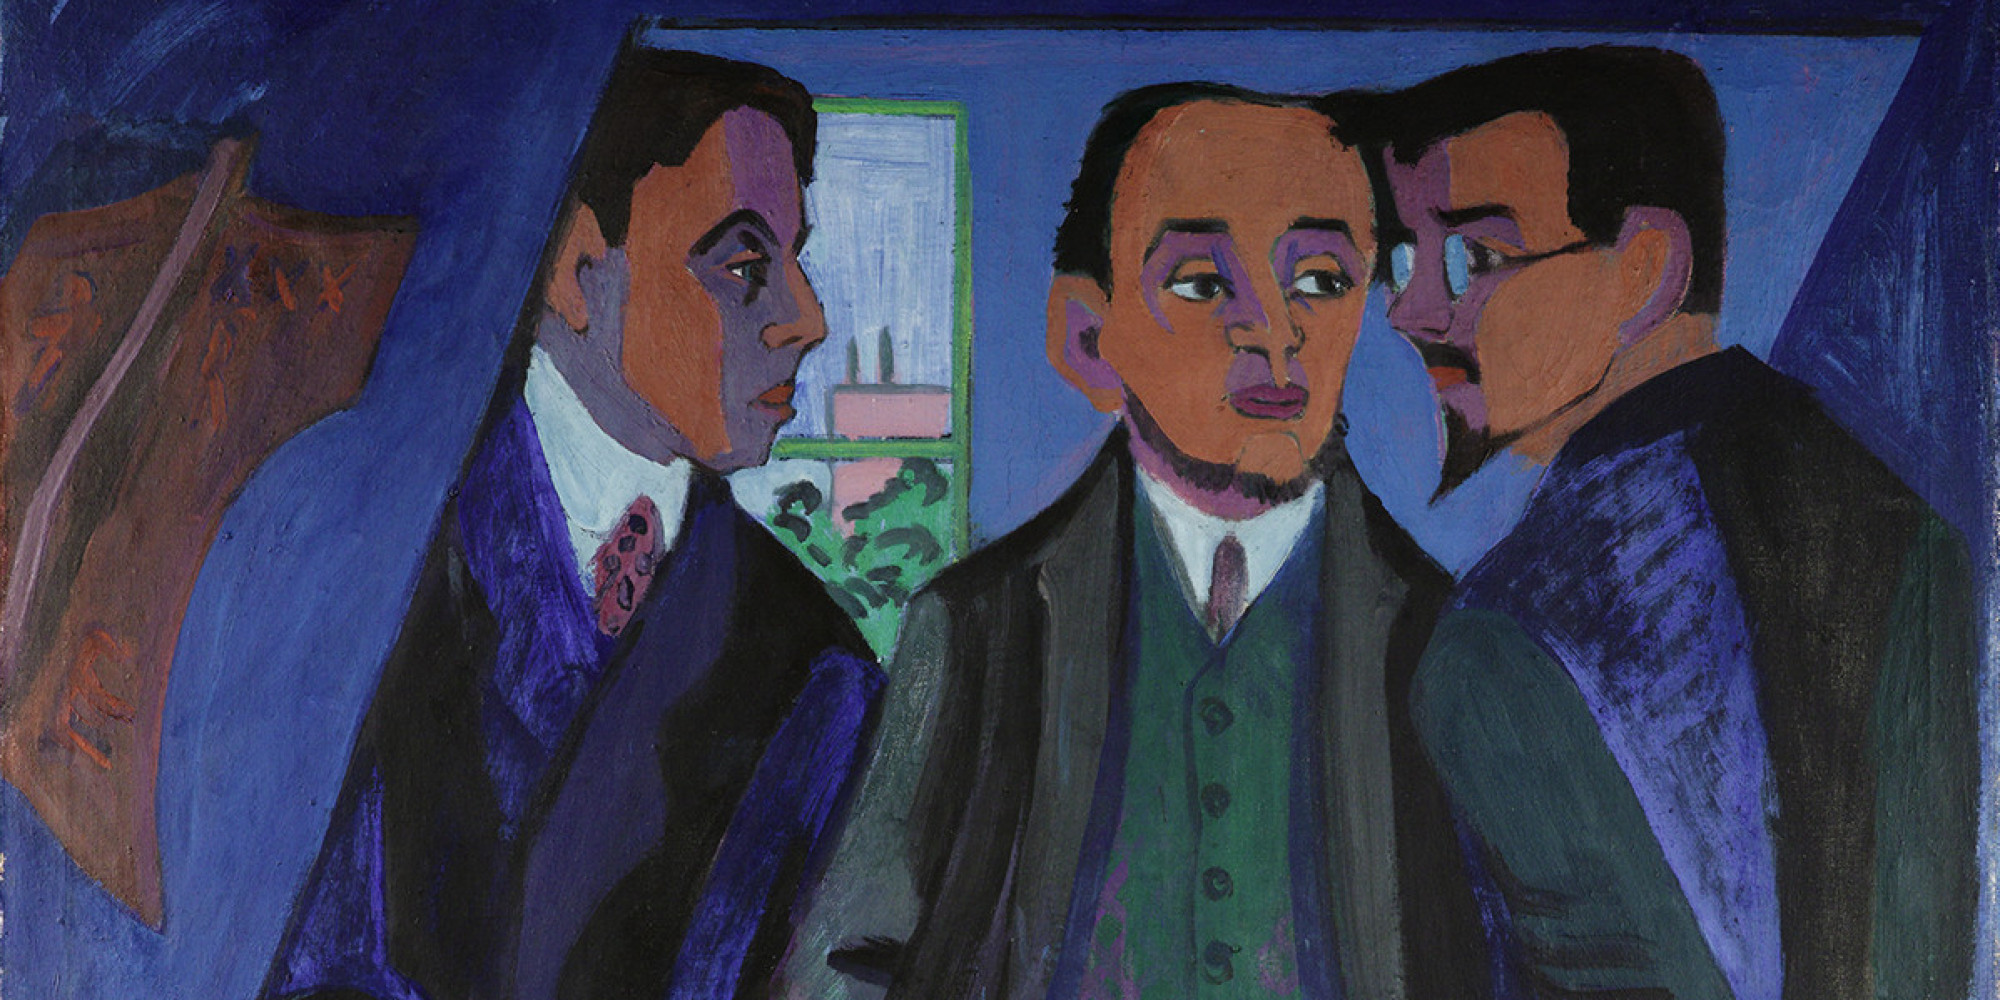 'Degenerate Art' Once Looted By The Nazis Is Now Being Shown In Stunning Exhibition